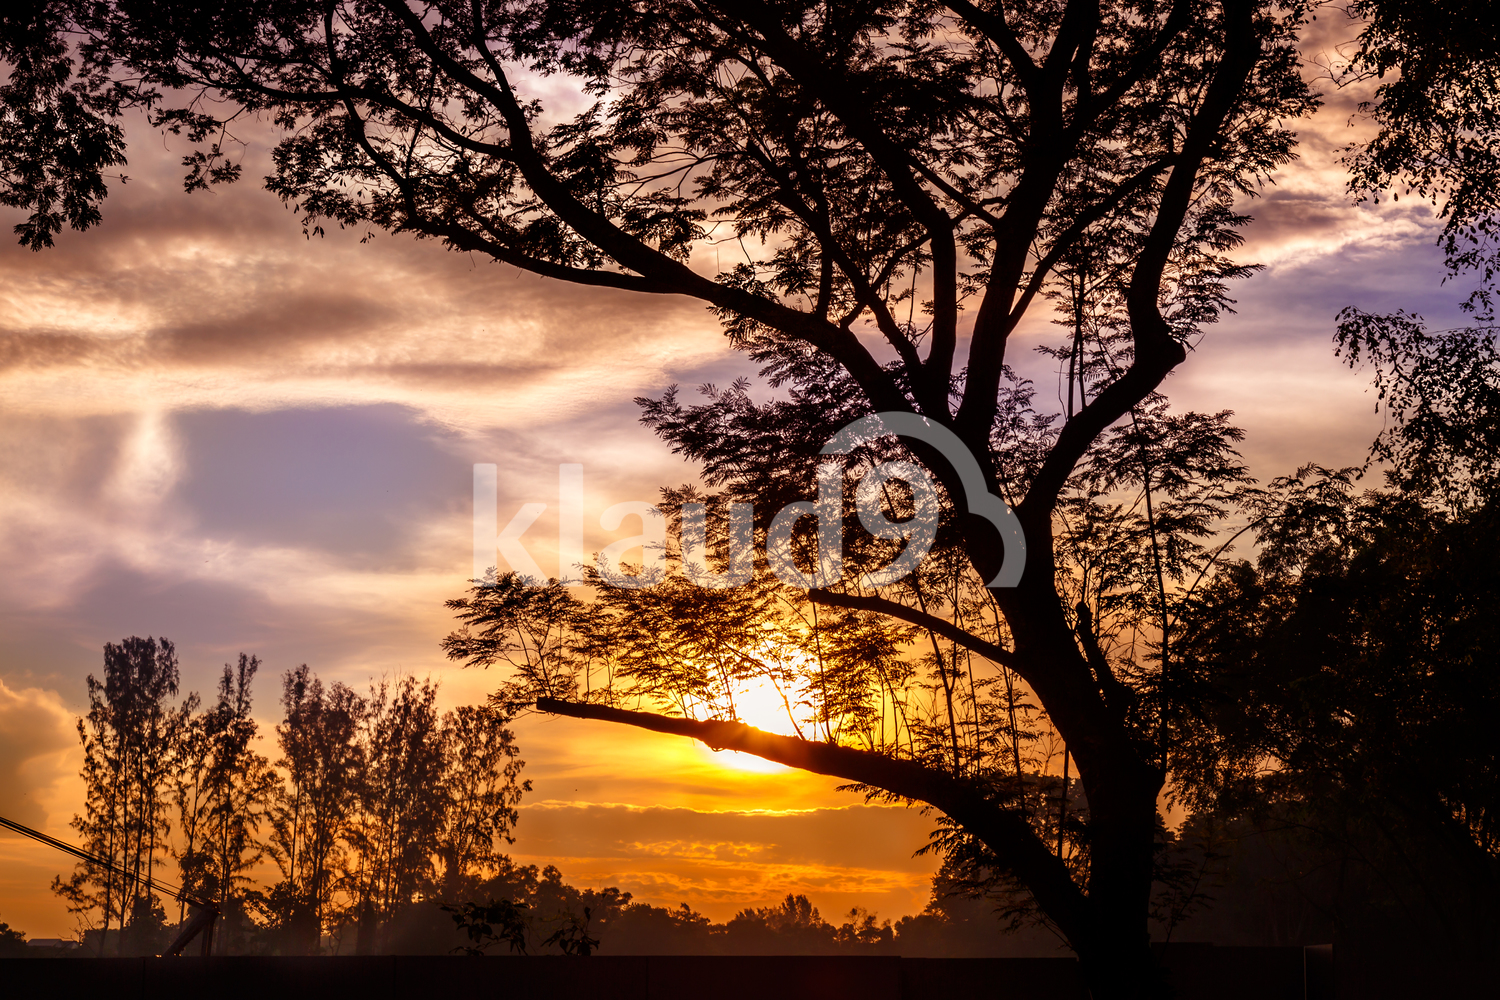 Sunrise silhouette of trees